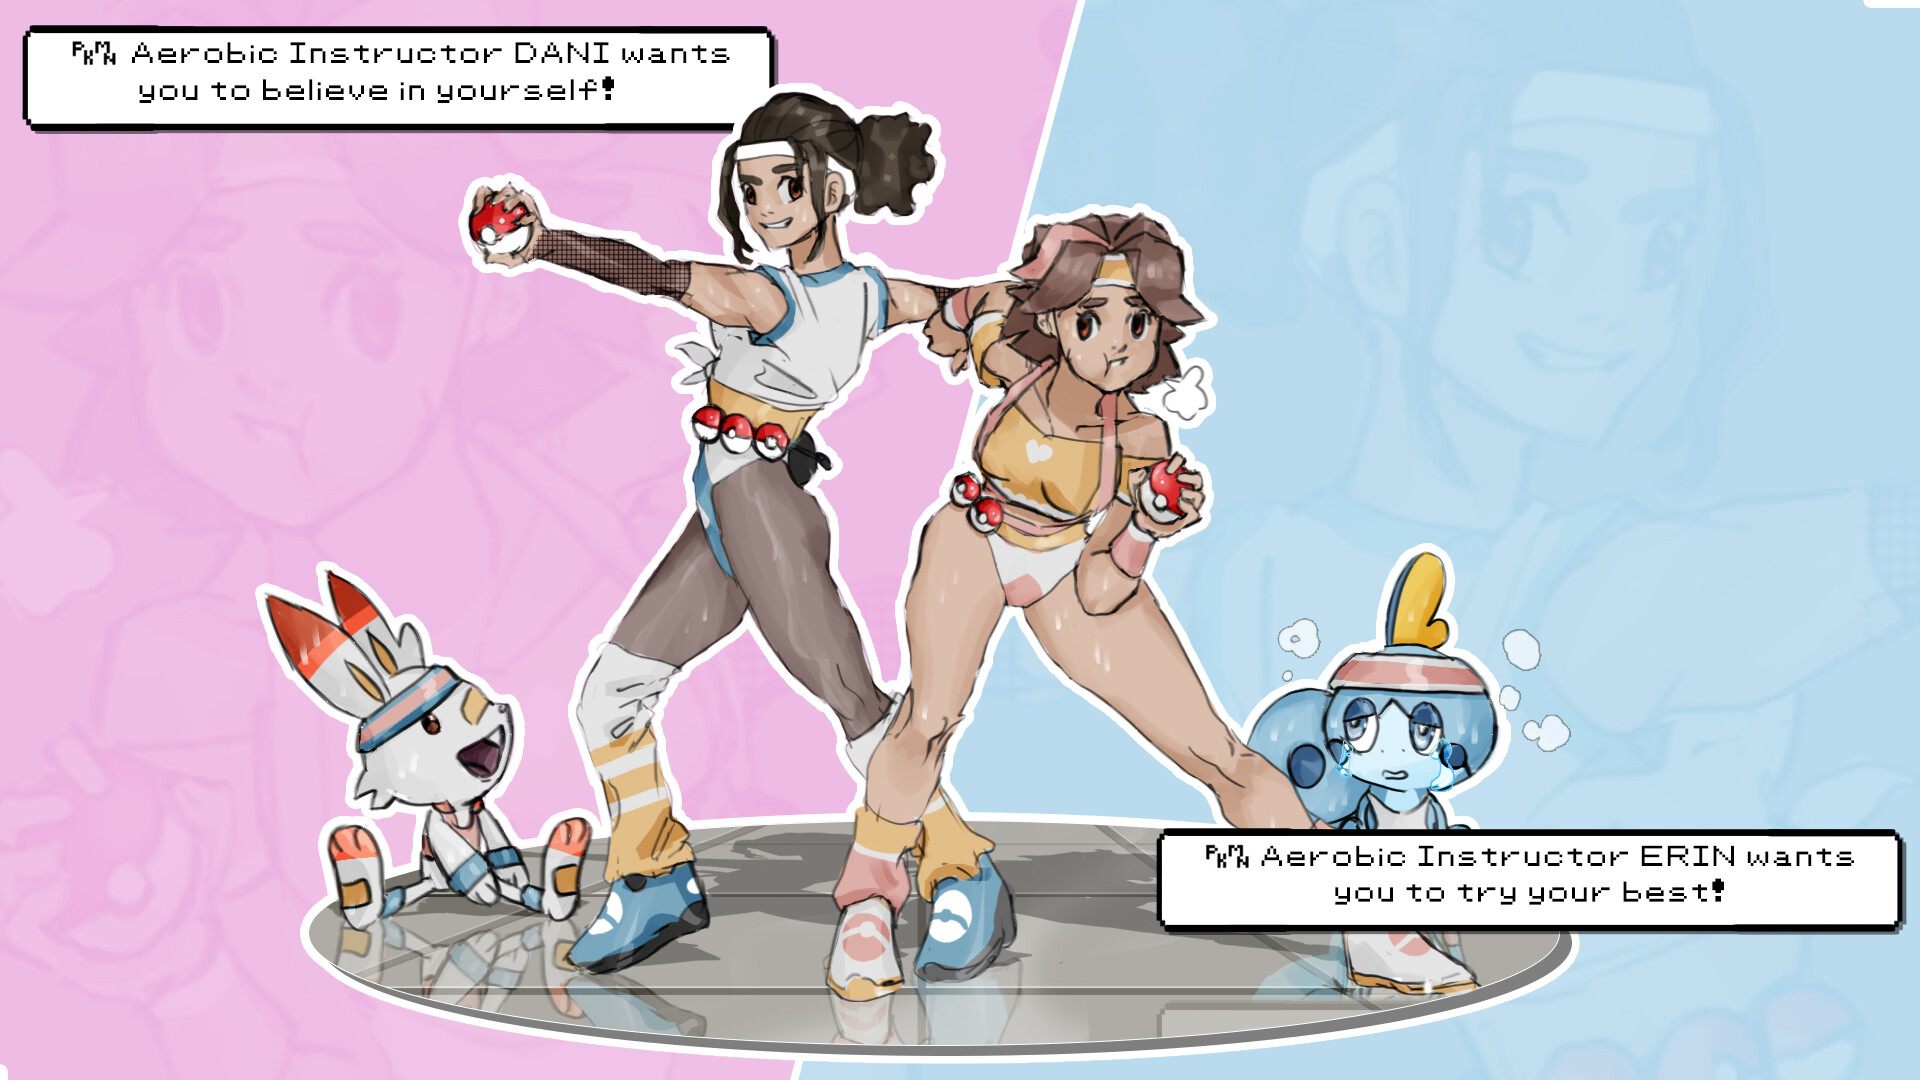 PKMN Aerobic Instructors ERIN & DANI want to battle!